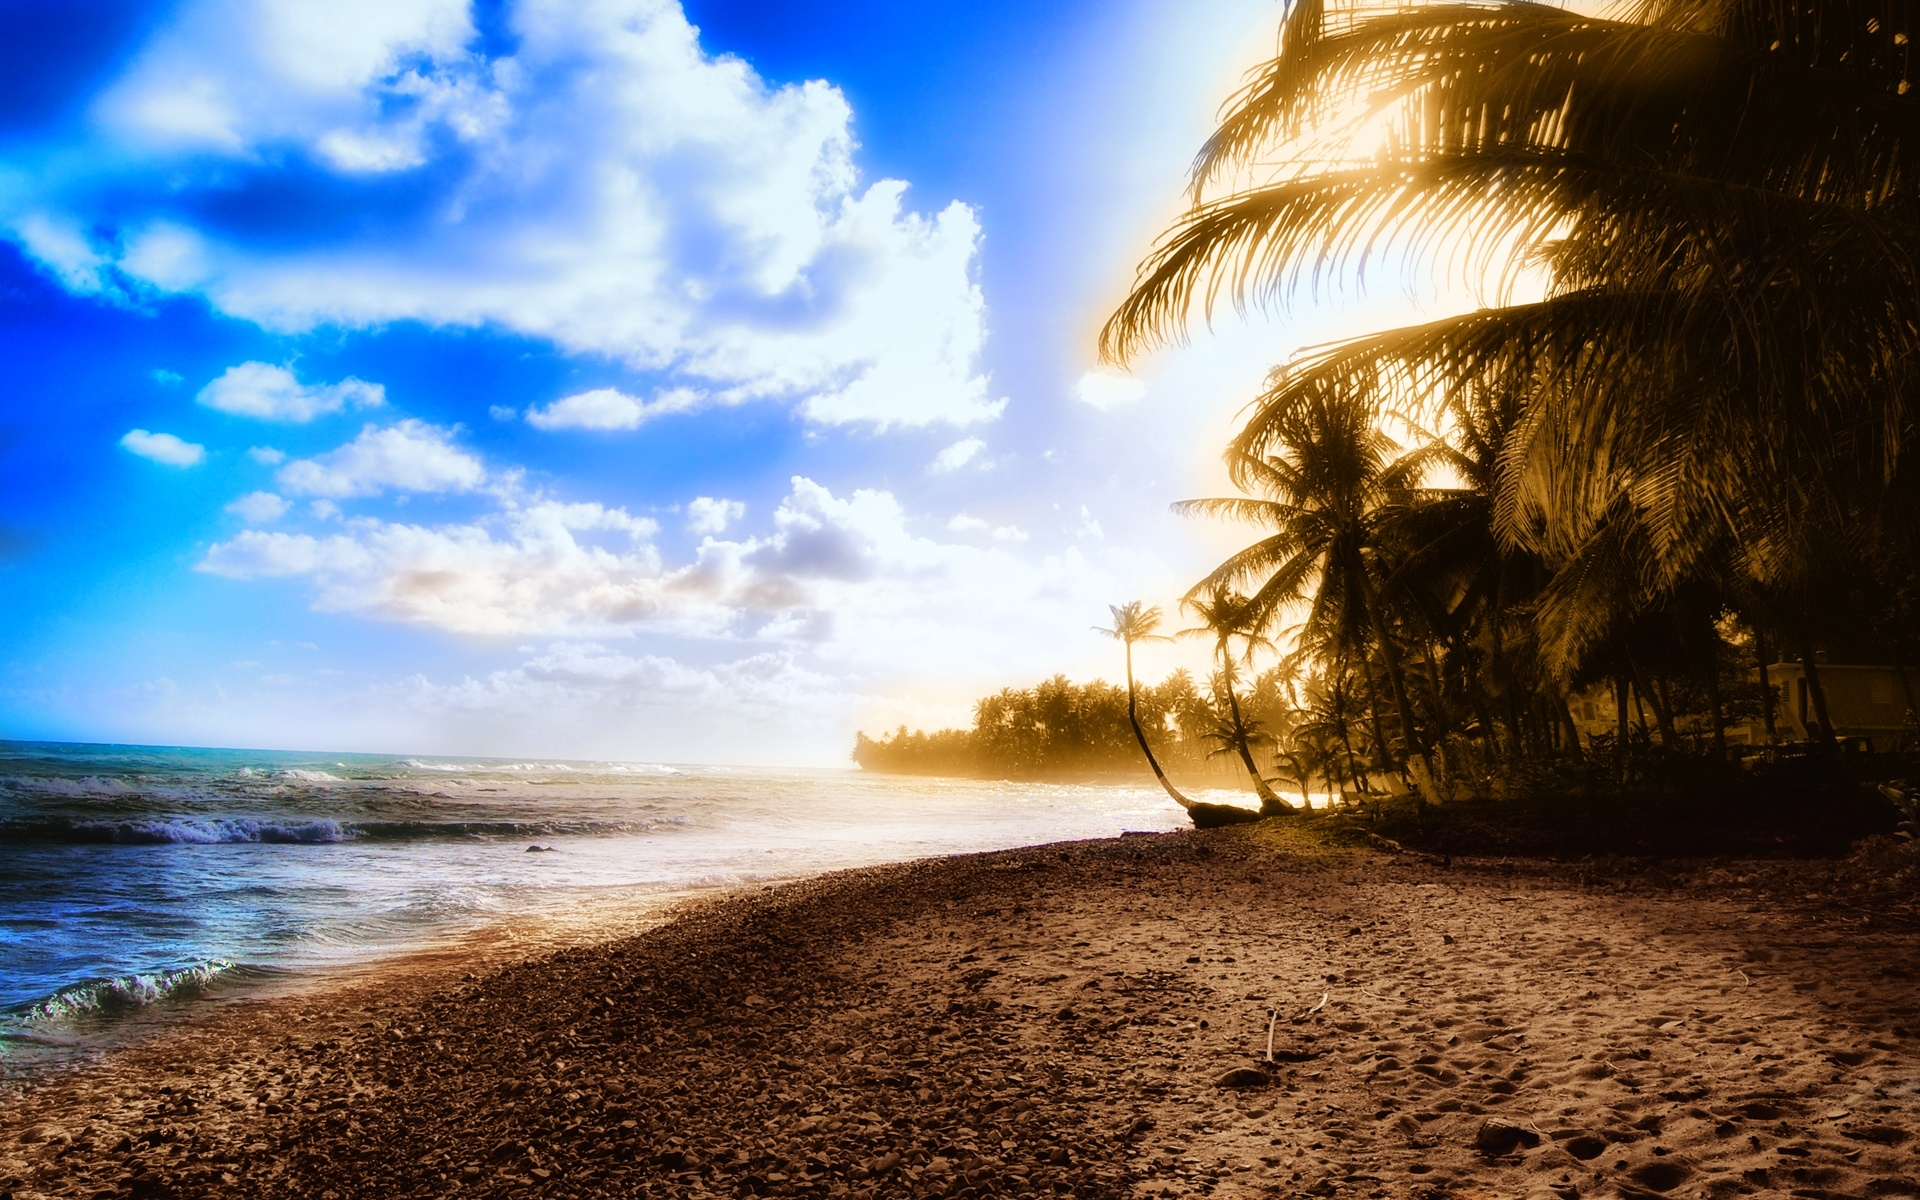 Summer Wallpaper HD Wallpapers Nature Widescreen 1920x1200